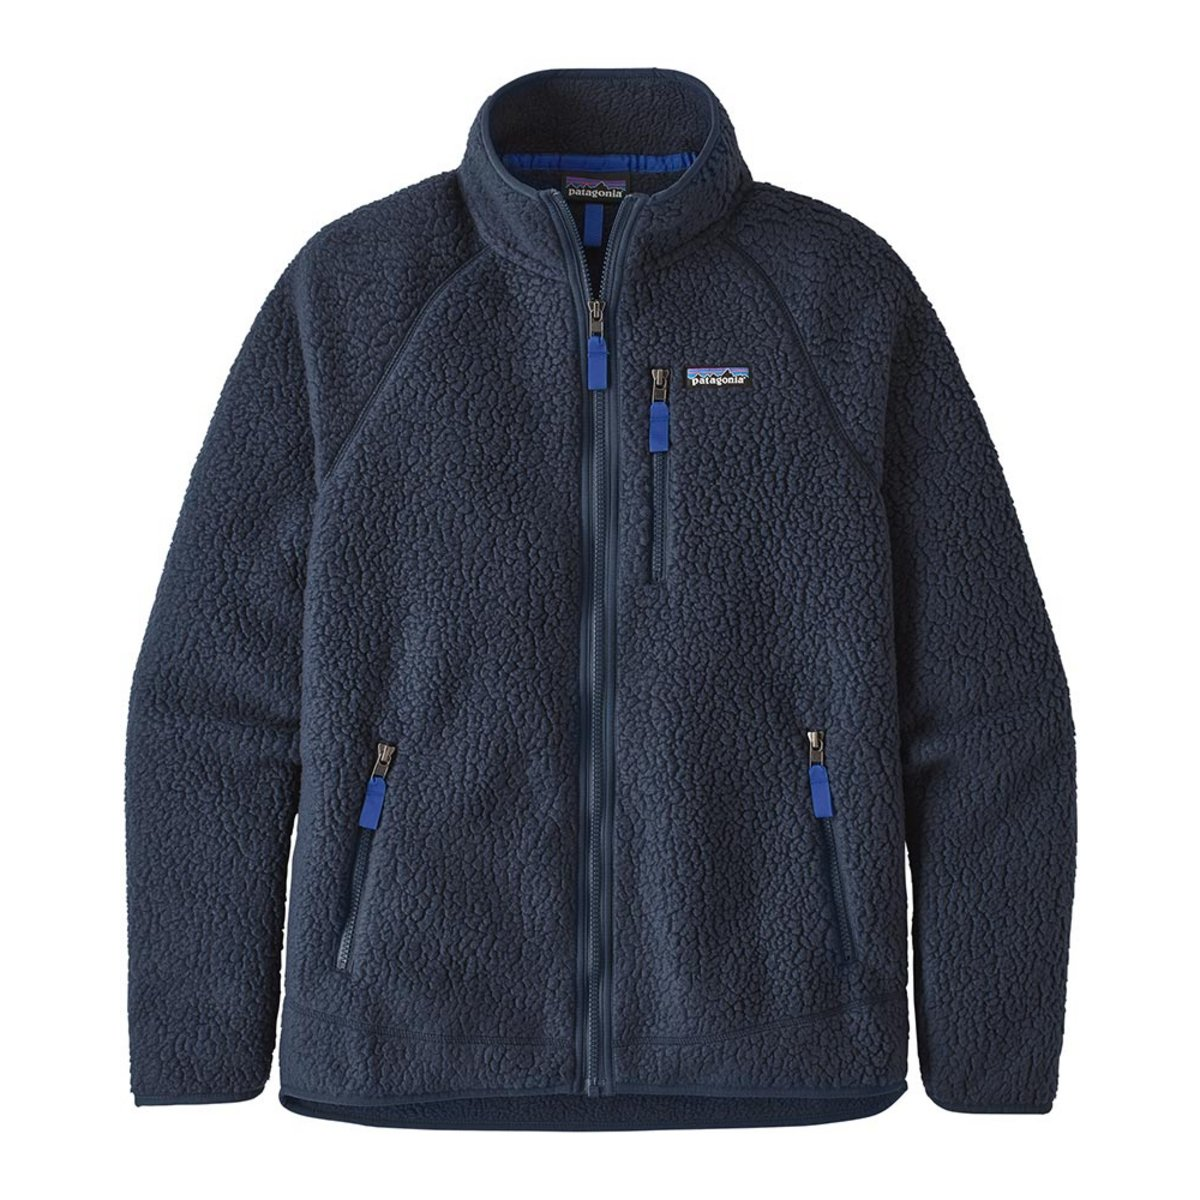 Patagonia Men's Retro Pile Jacket 0